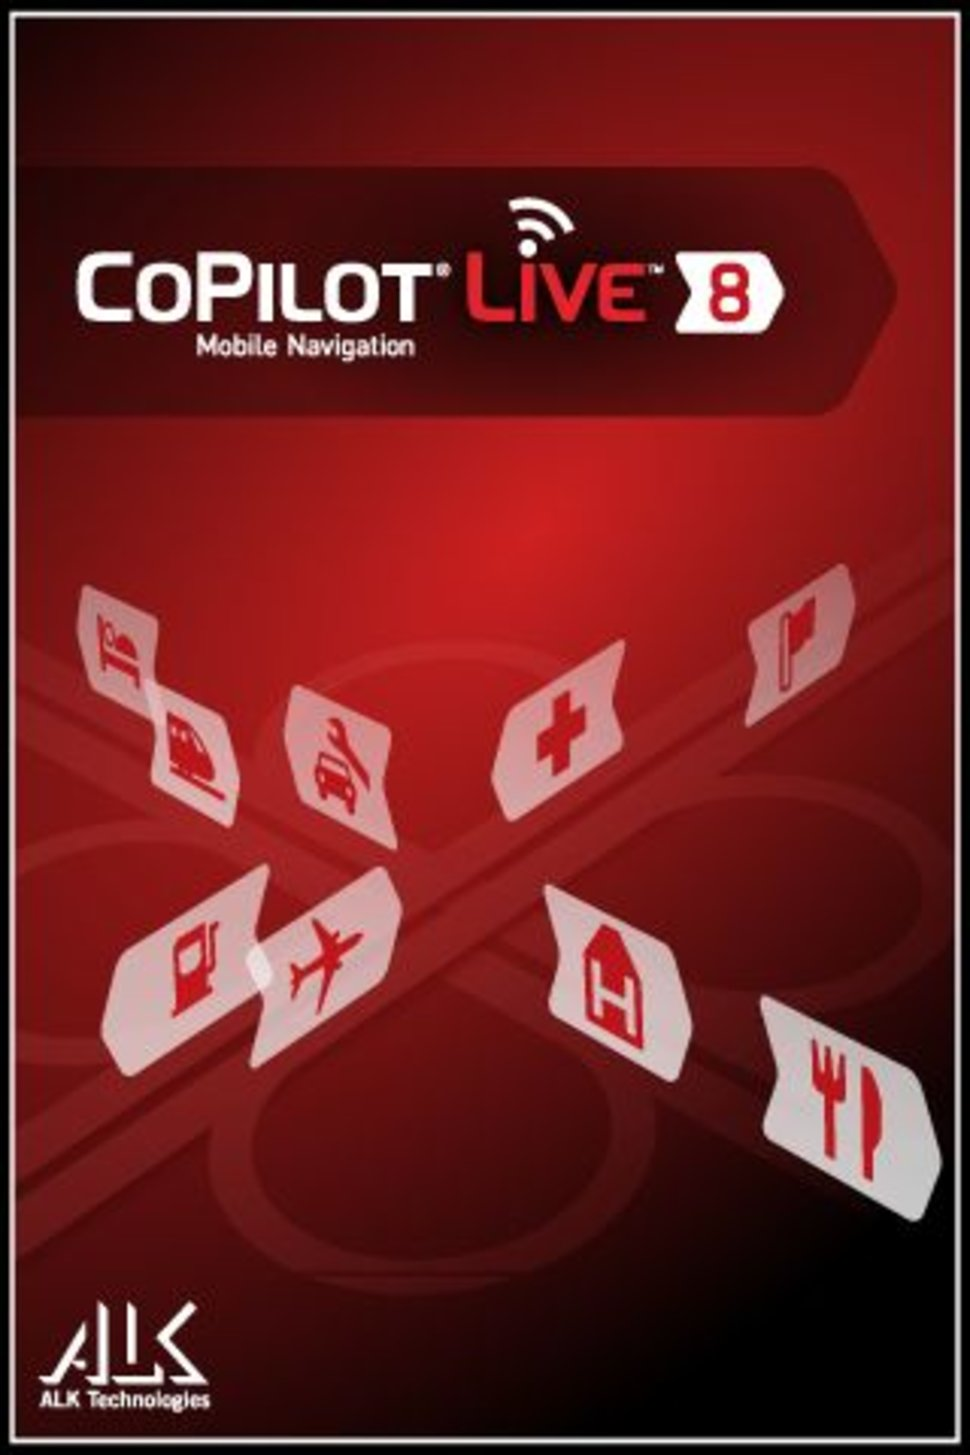 copilot live 8 for iphone image 1